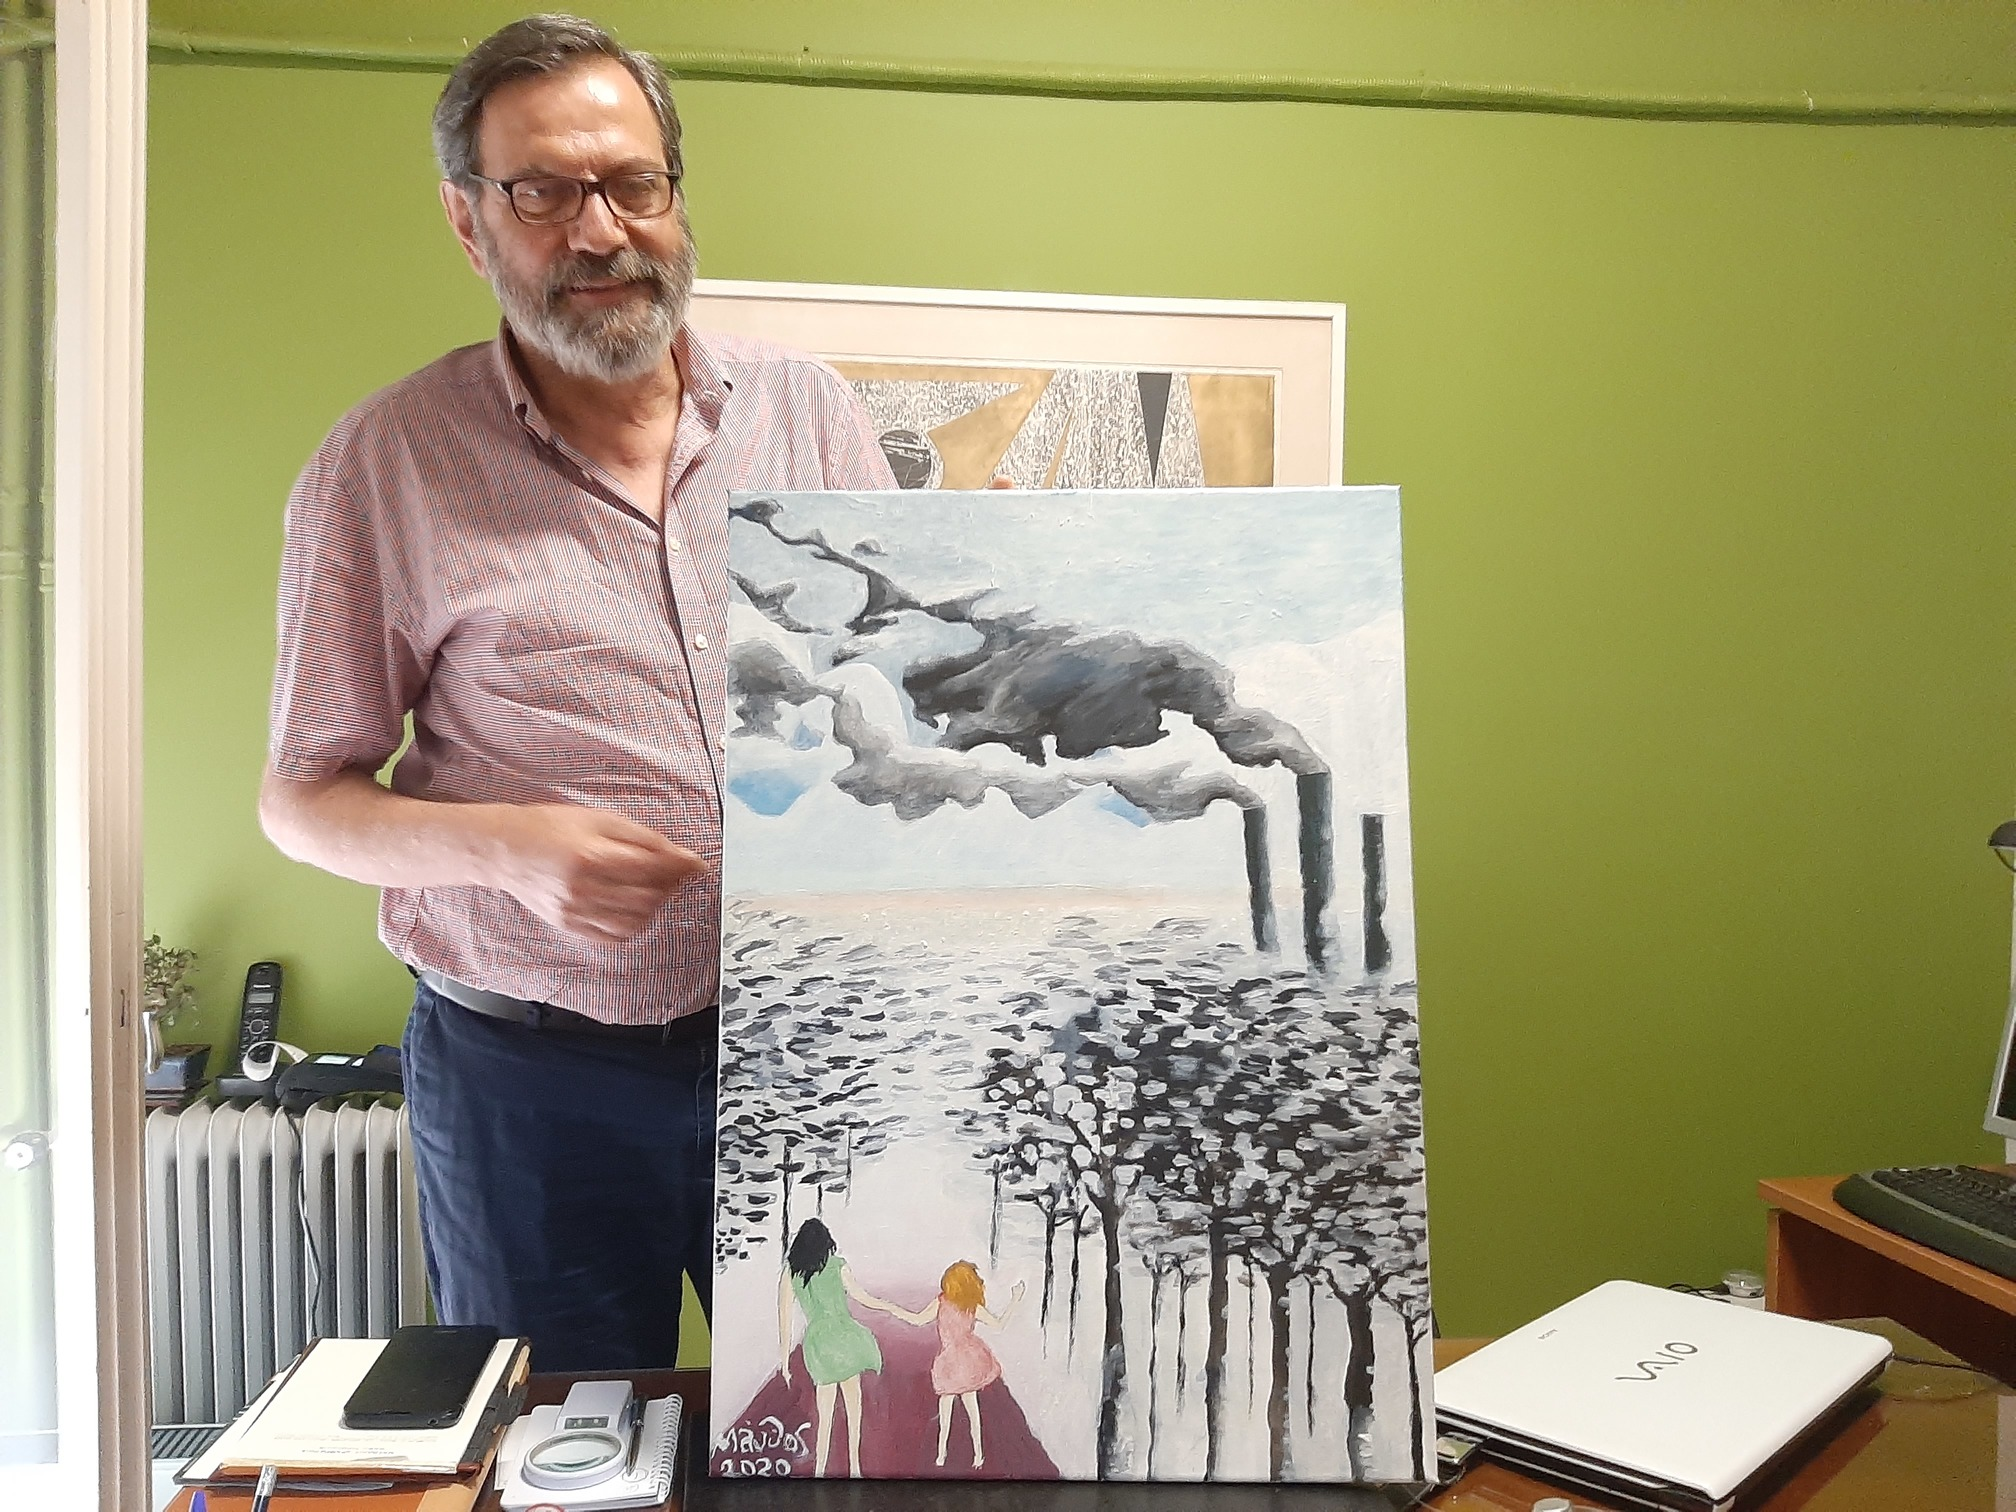 Cardiologist Matthaios Dramitinos, hobby painter, shows his latest work depicting pollution in his city